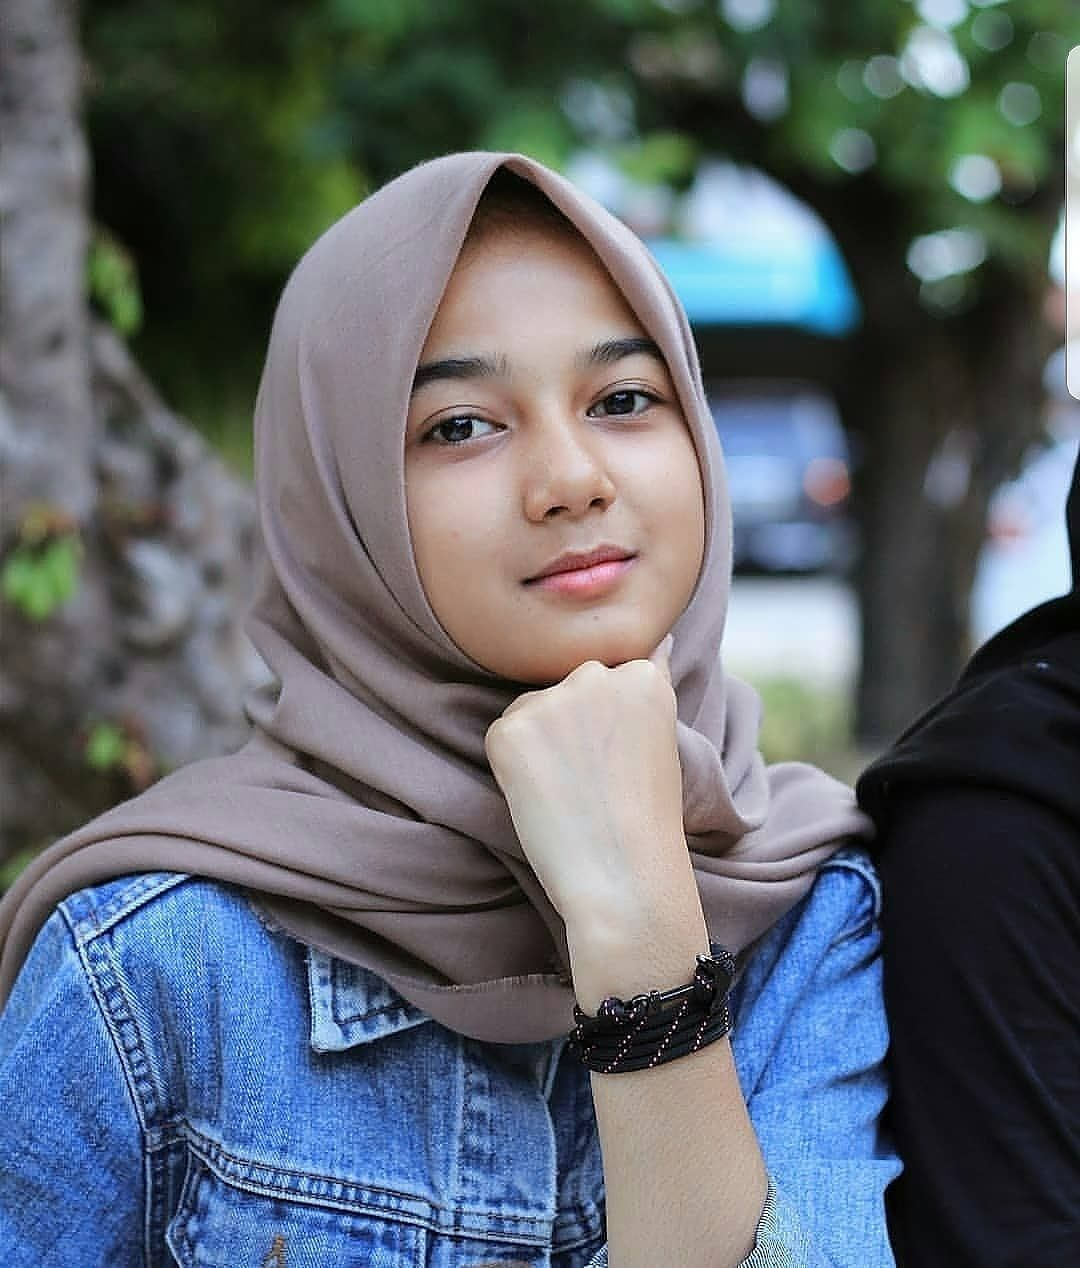 In muslim speed dating, malaysians seek matches made in heaven